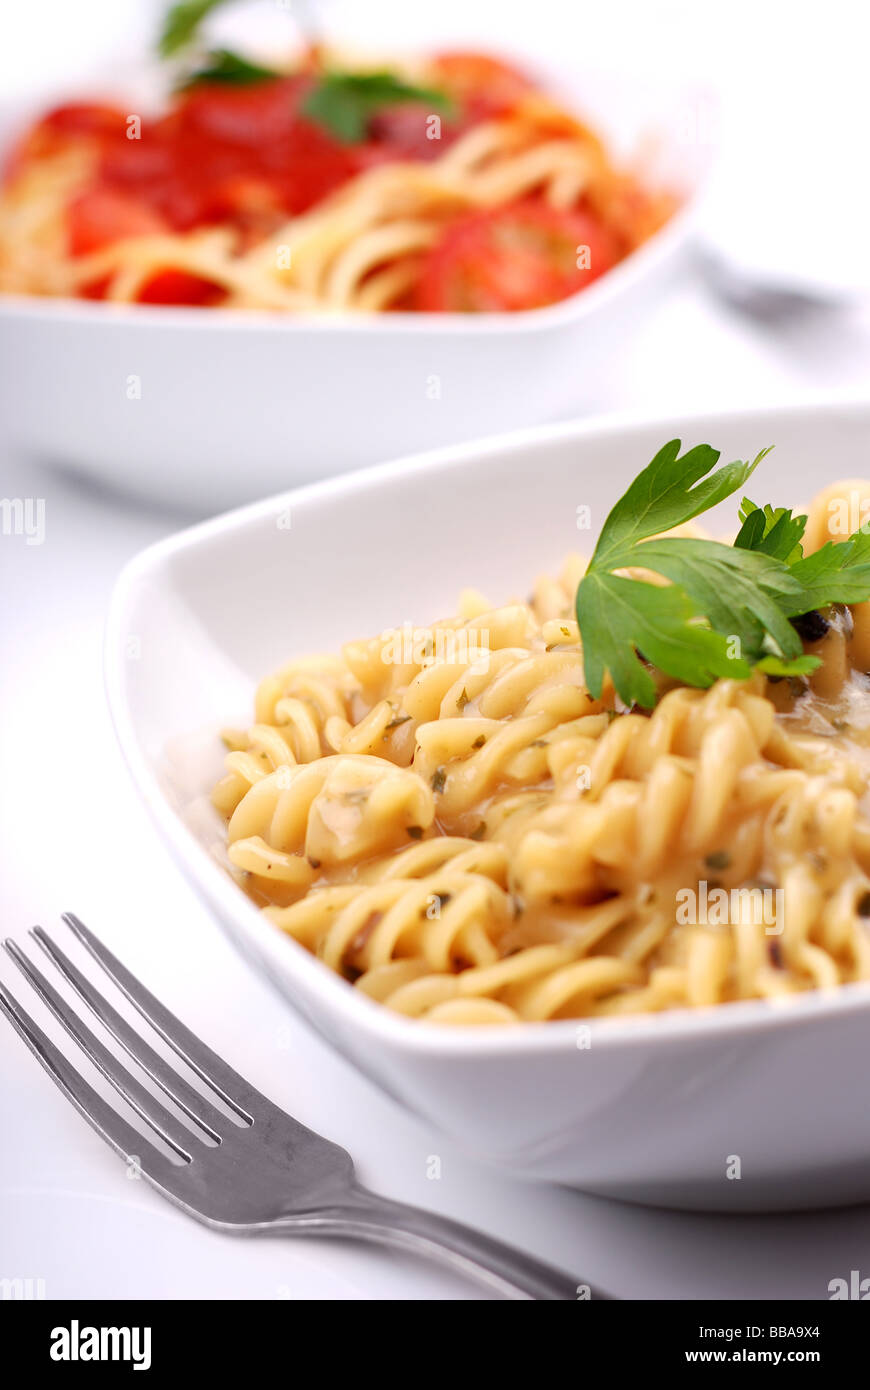 Two servings of delicious pasta - Stock Image